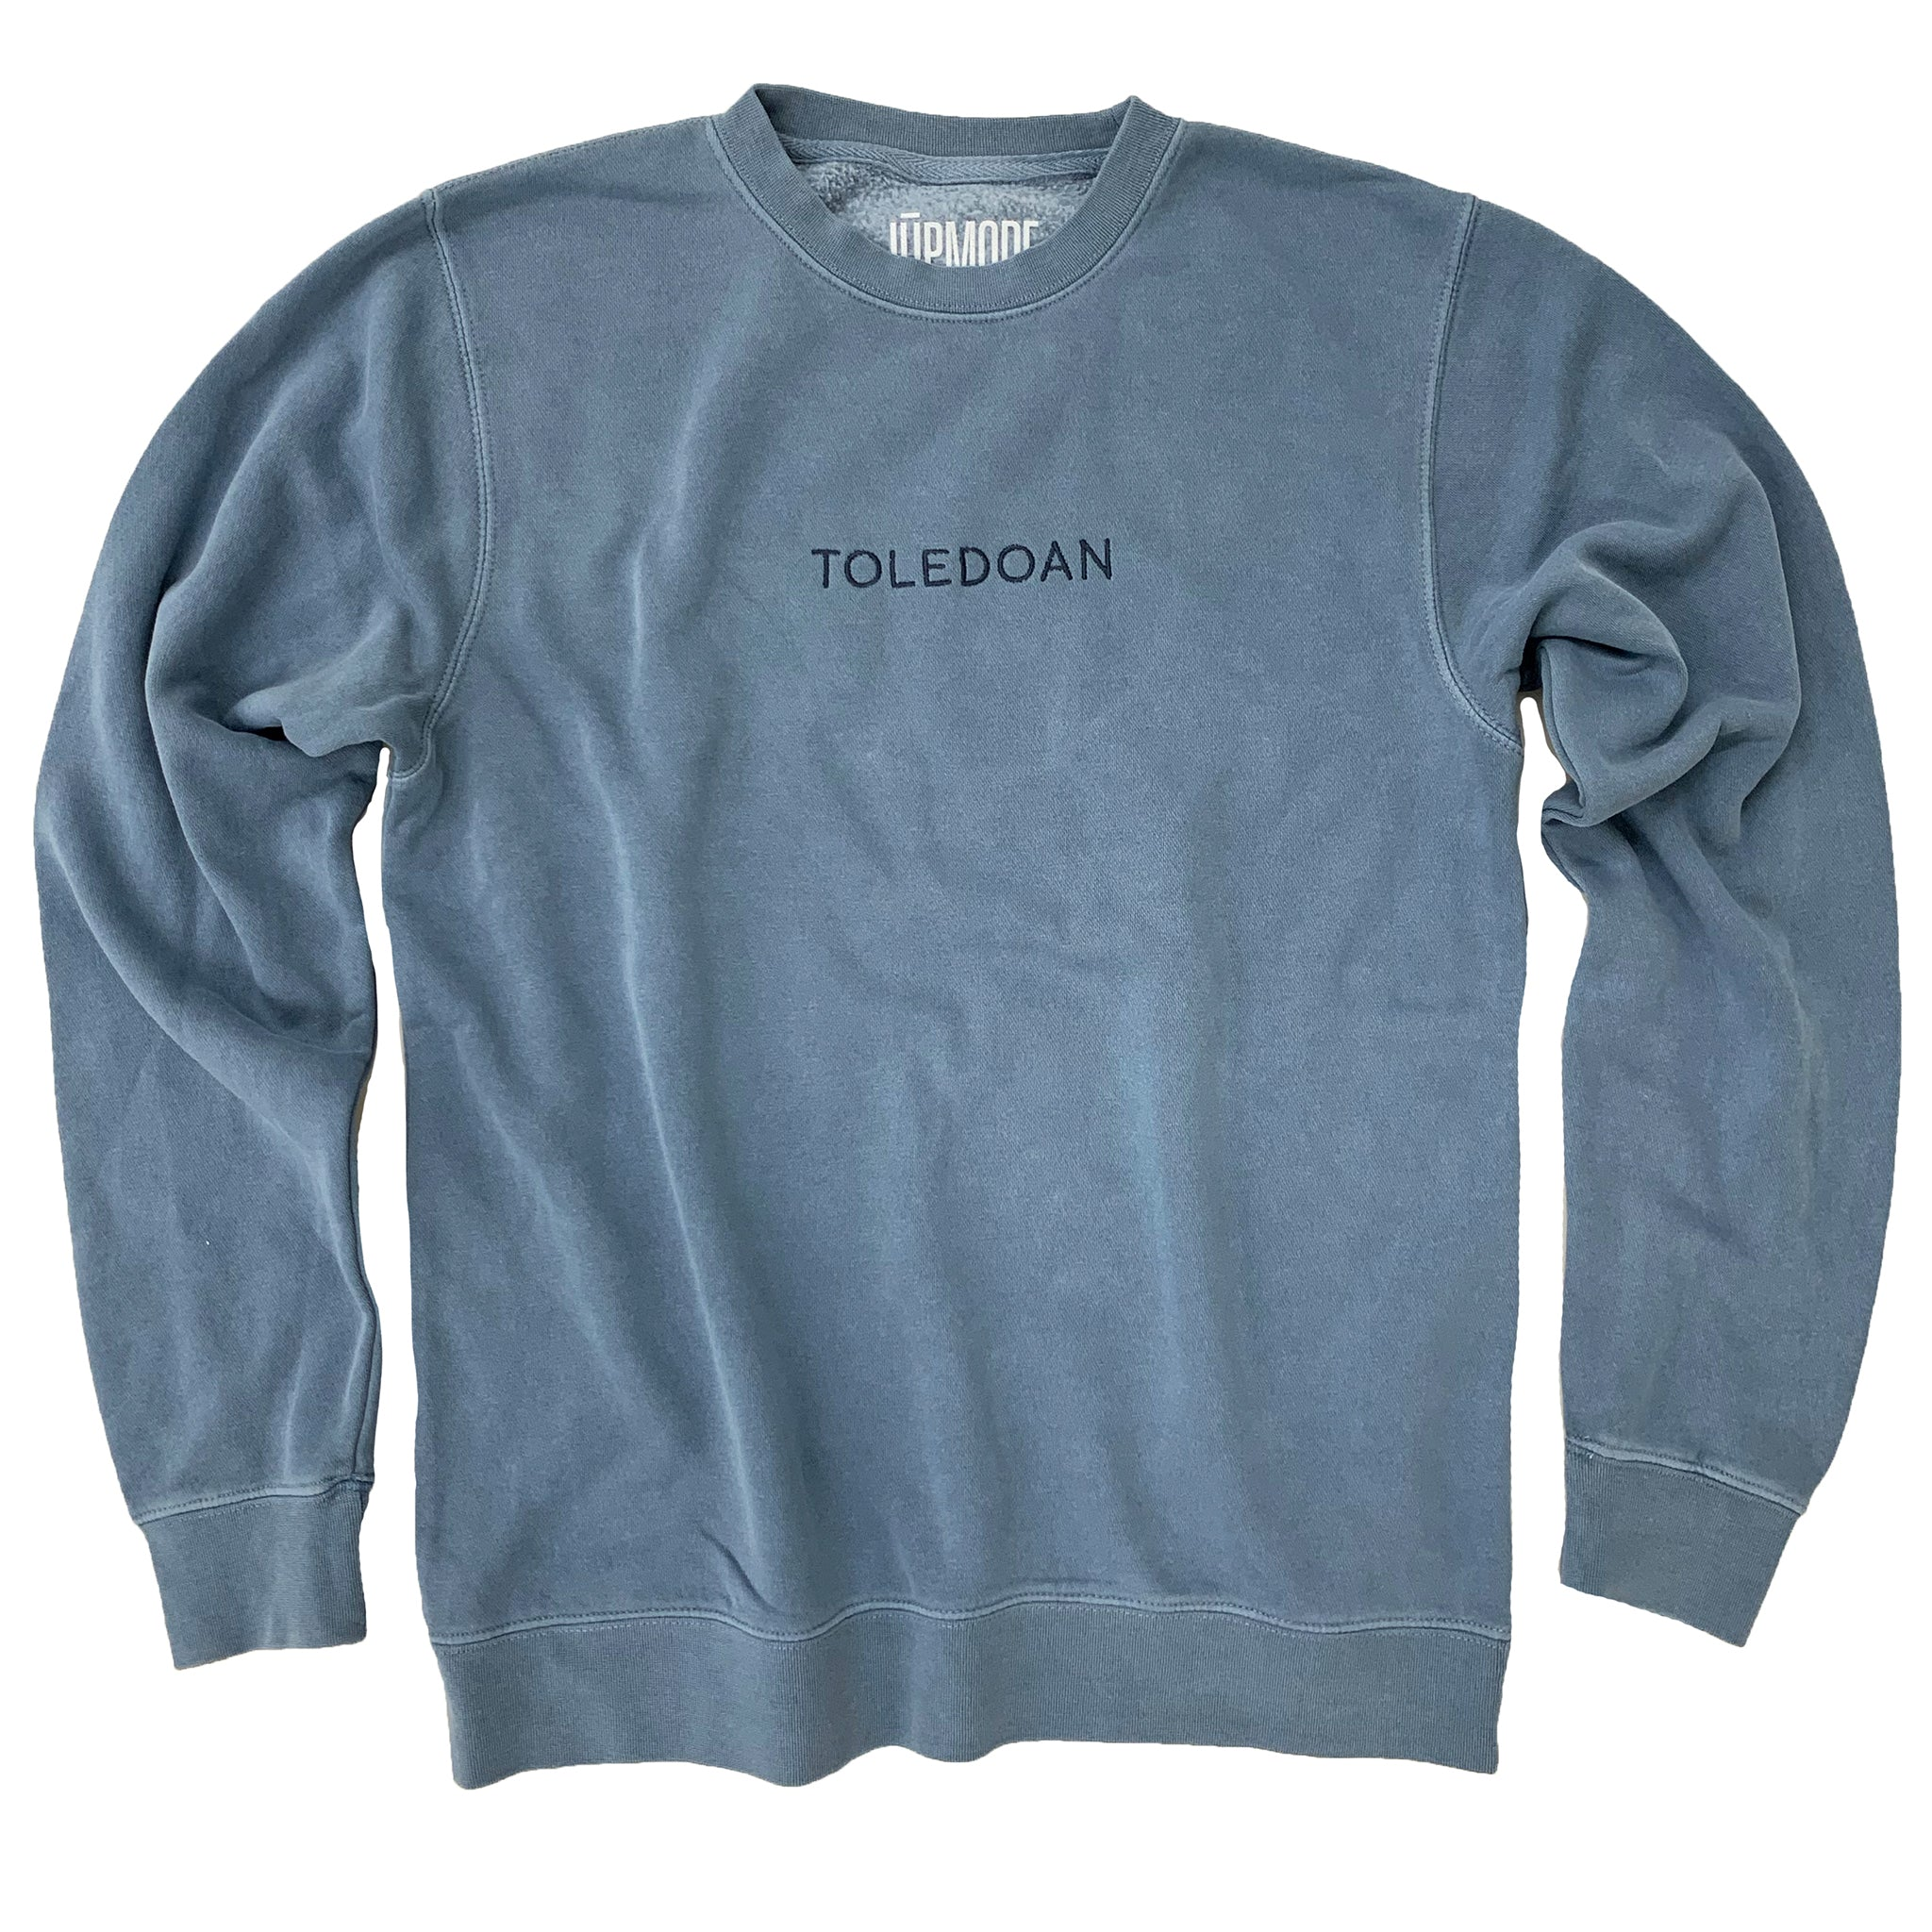 Toledoan Embroidered Crew